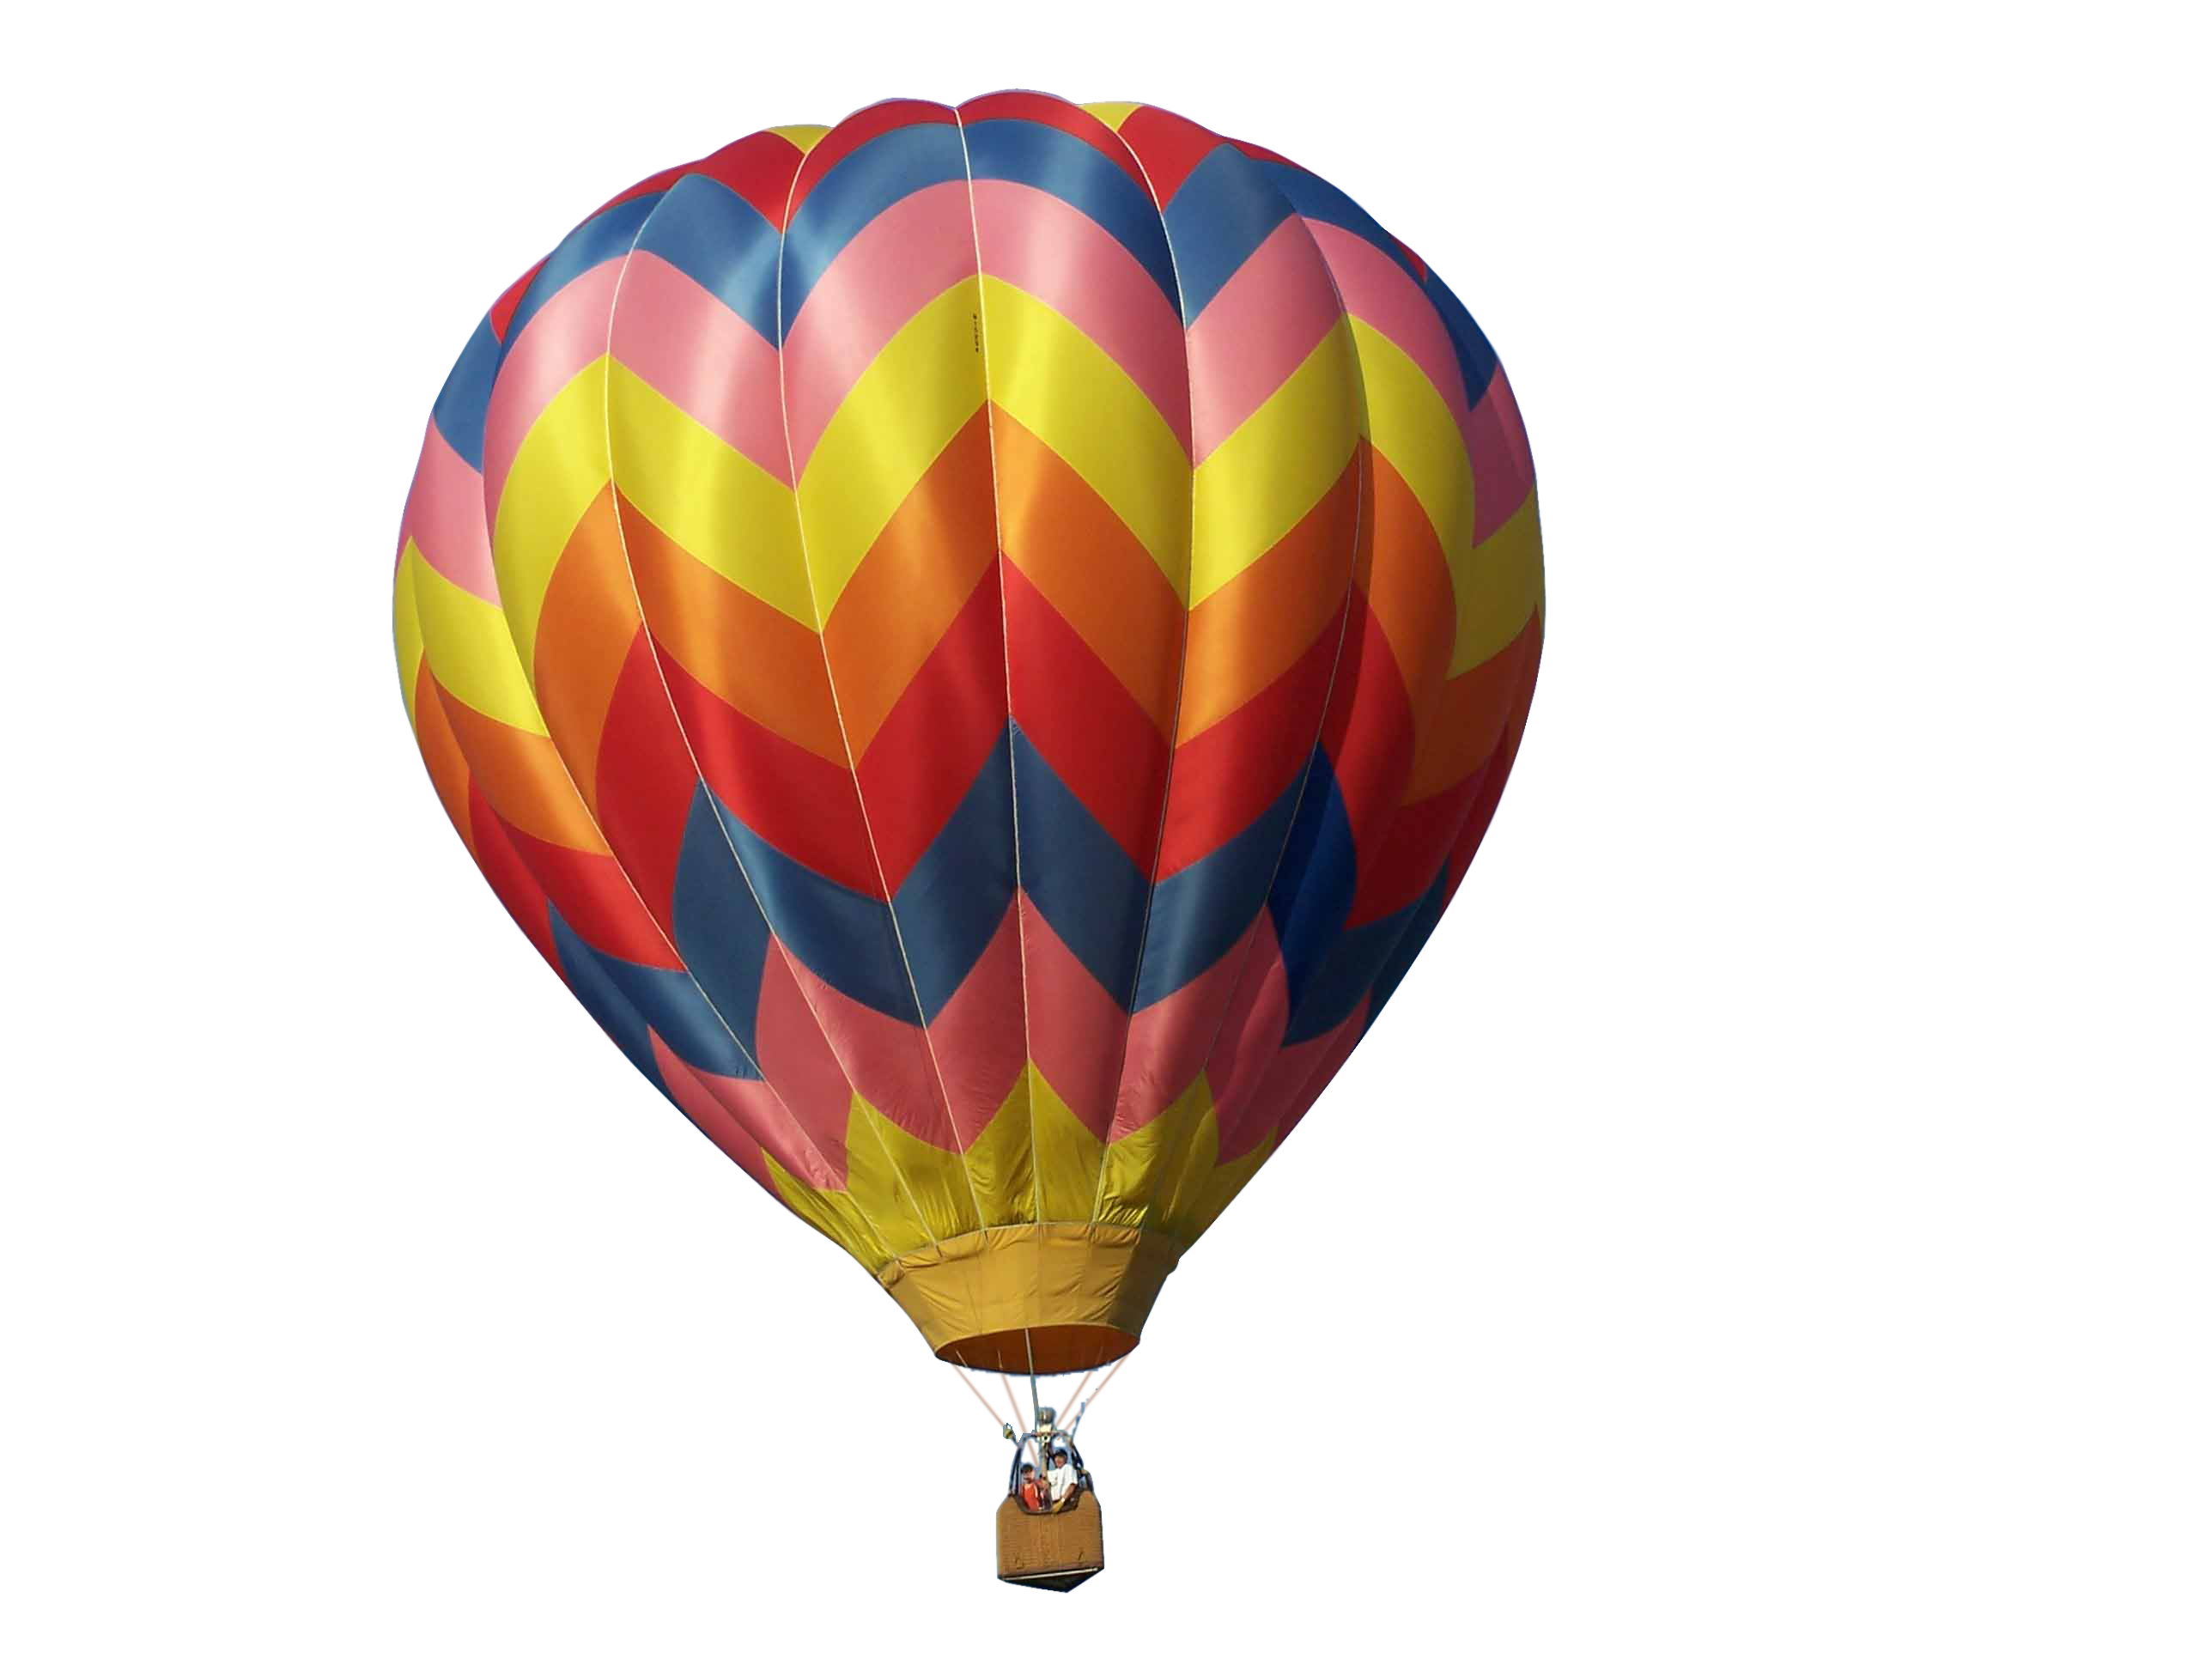 Hot air ballon png. Balloon hotairballoonpng